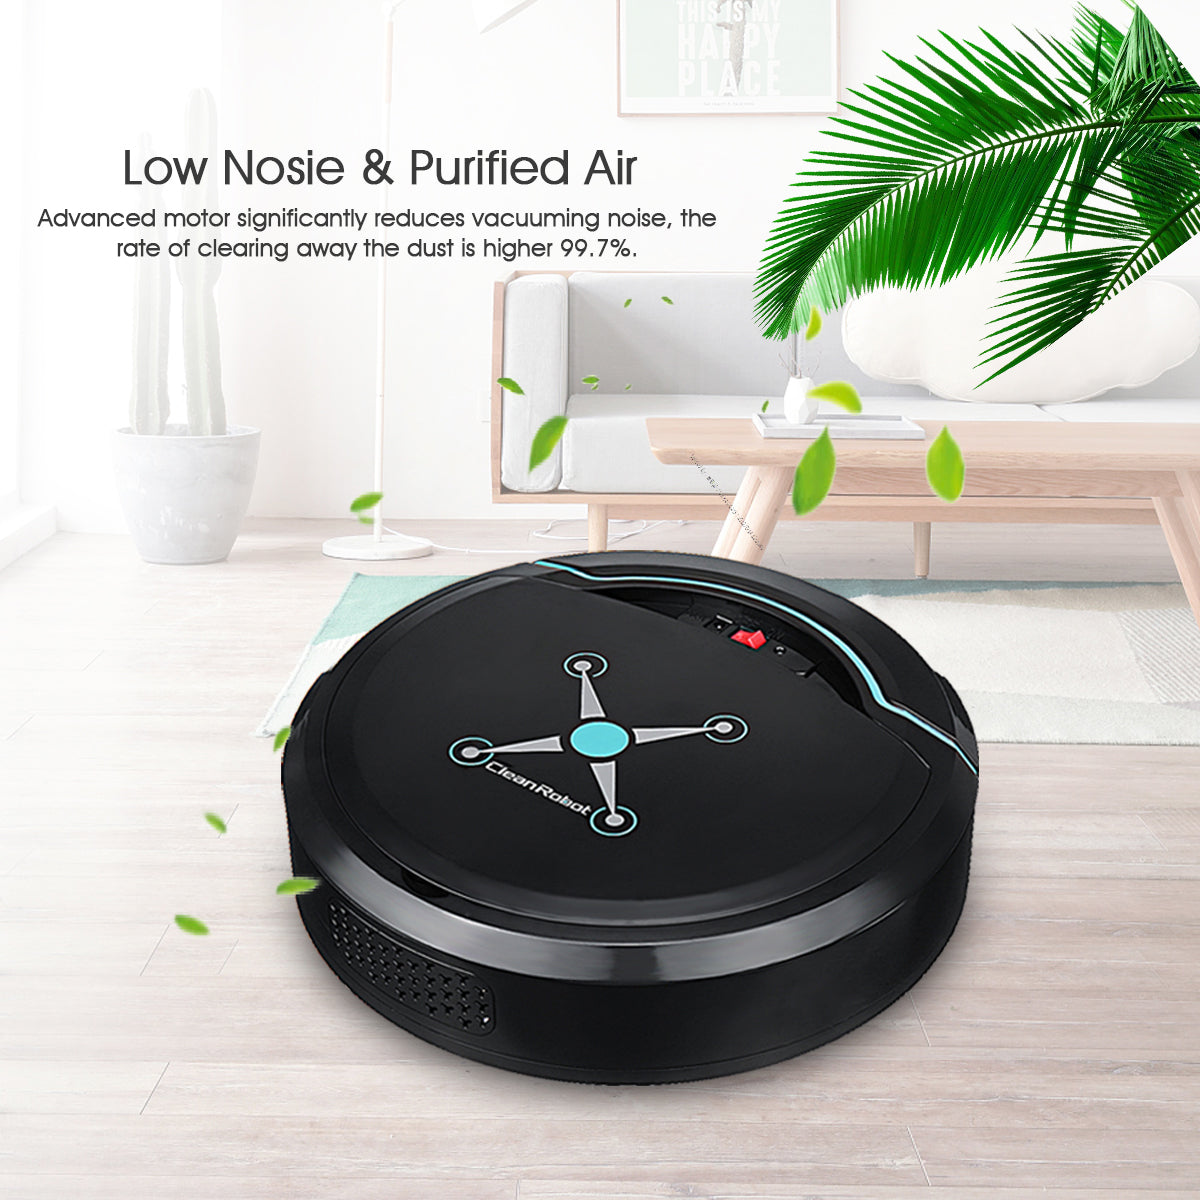 S001 Robot Vacuum Cleaner Black Friday Cyber Monday Boxing